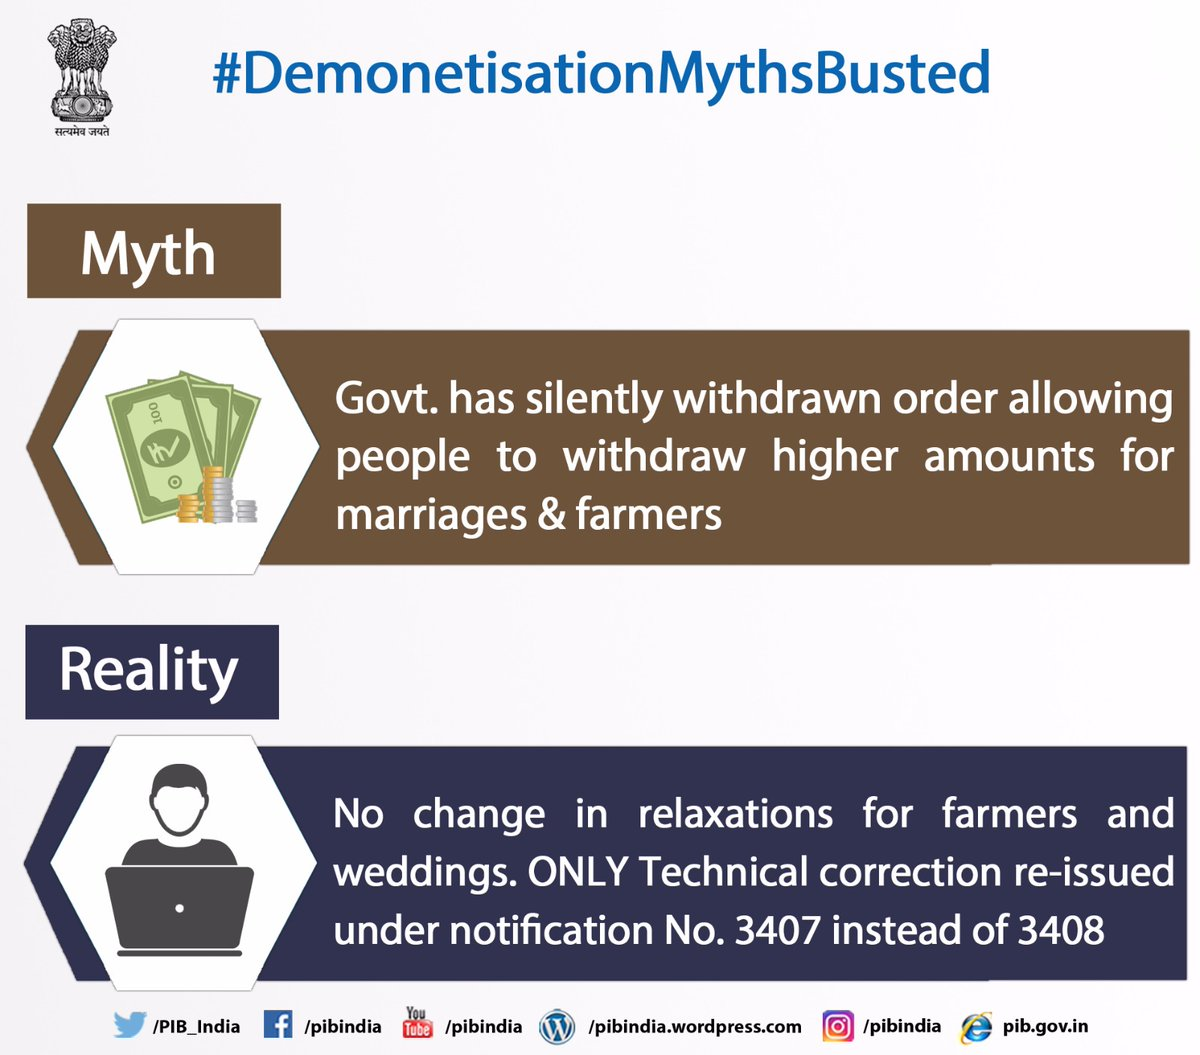 Demonetisation Myths Busted